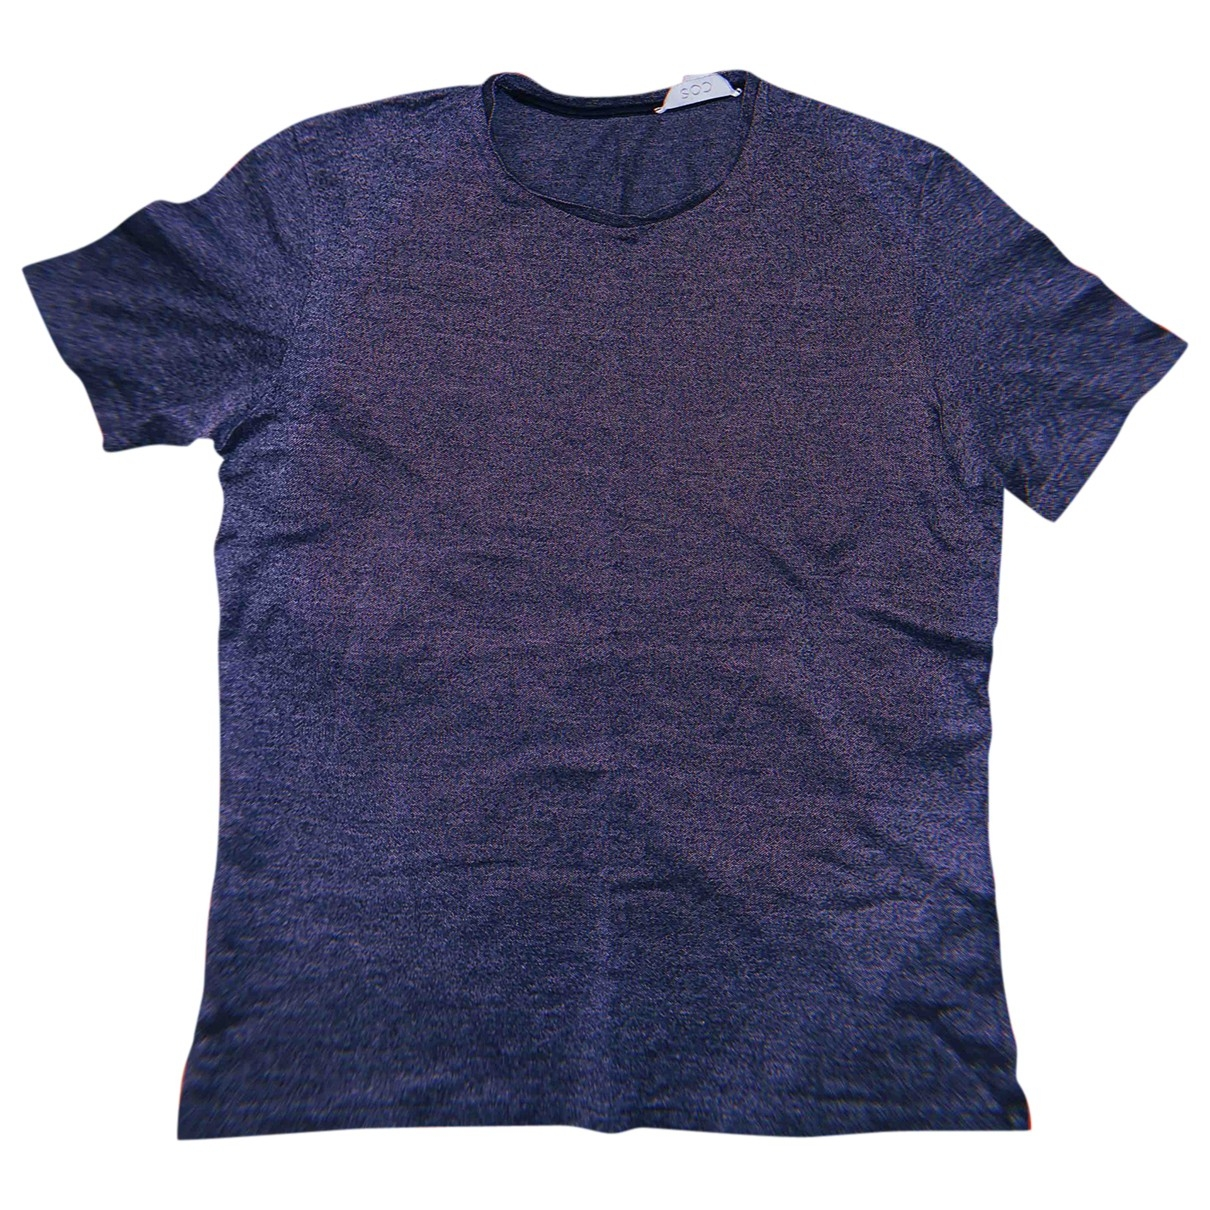 Cos \N Navy Cotton T-shirts for Men S International